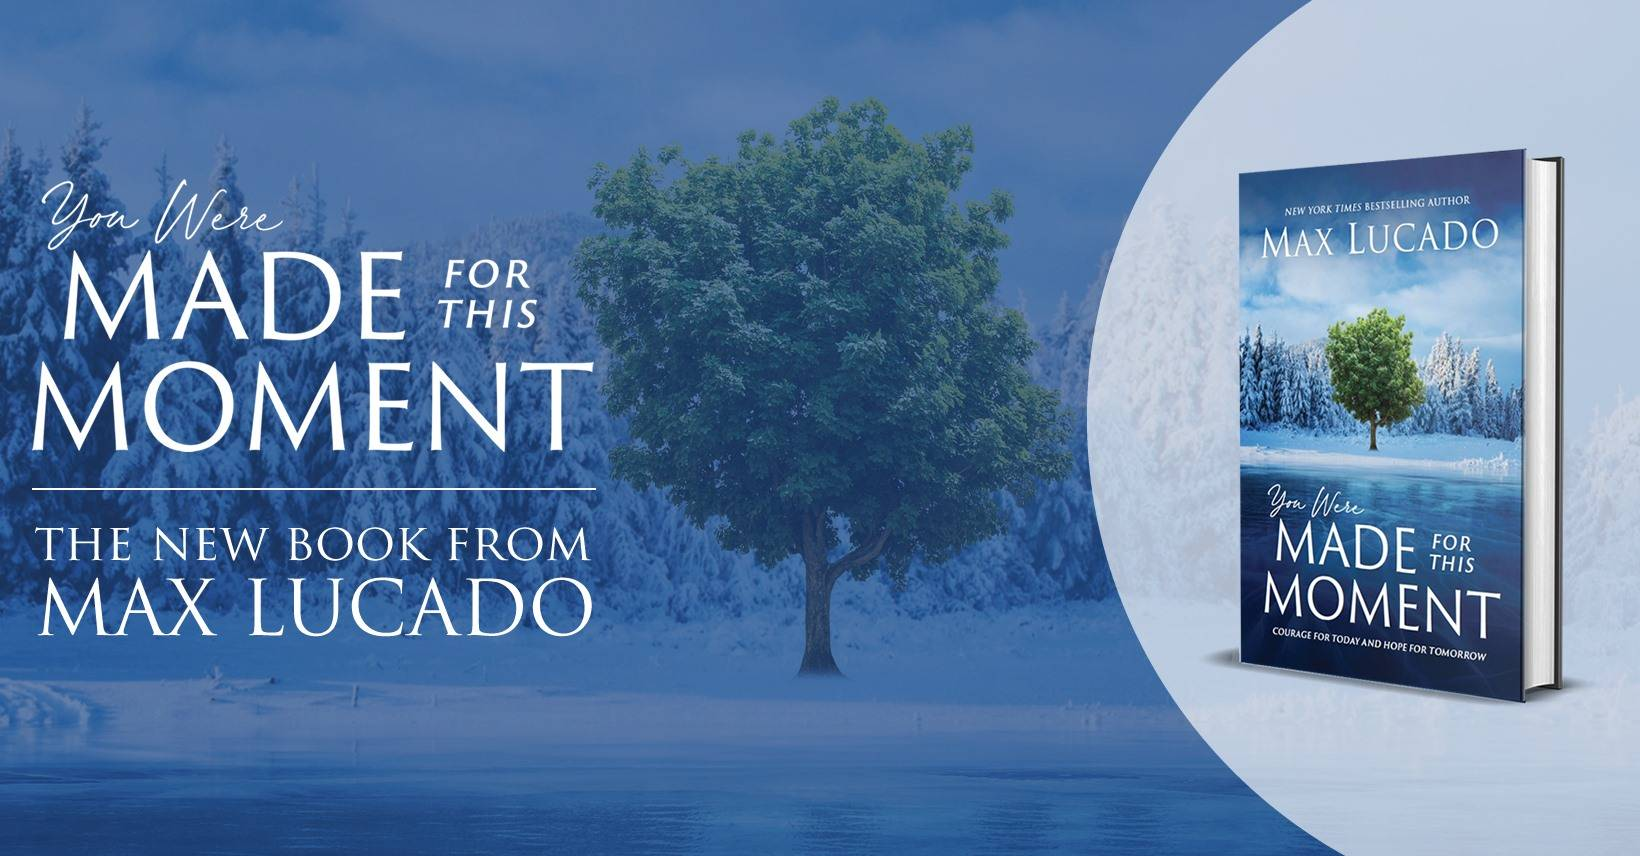 You Were Made for This Moment - The New Book from Max Lucado